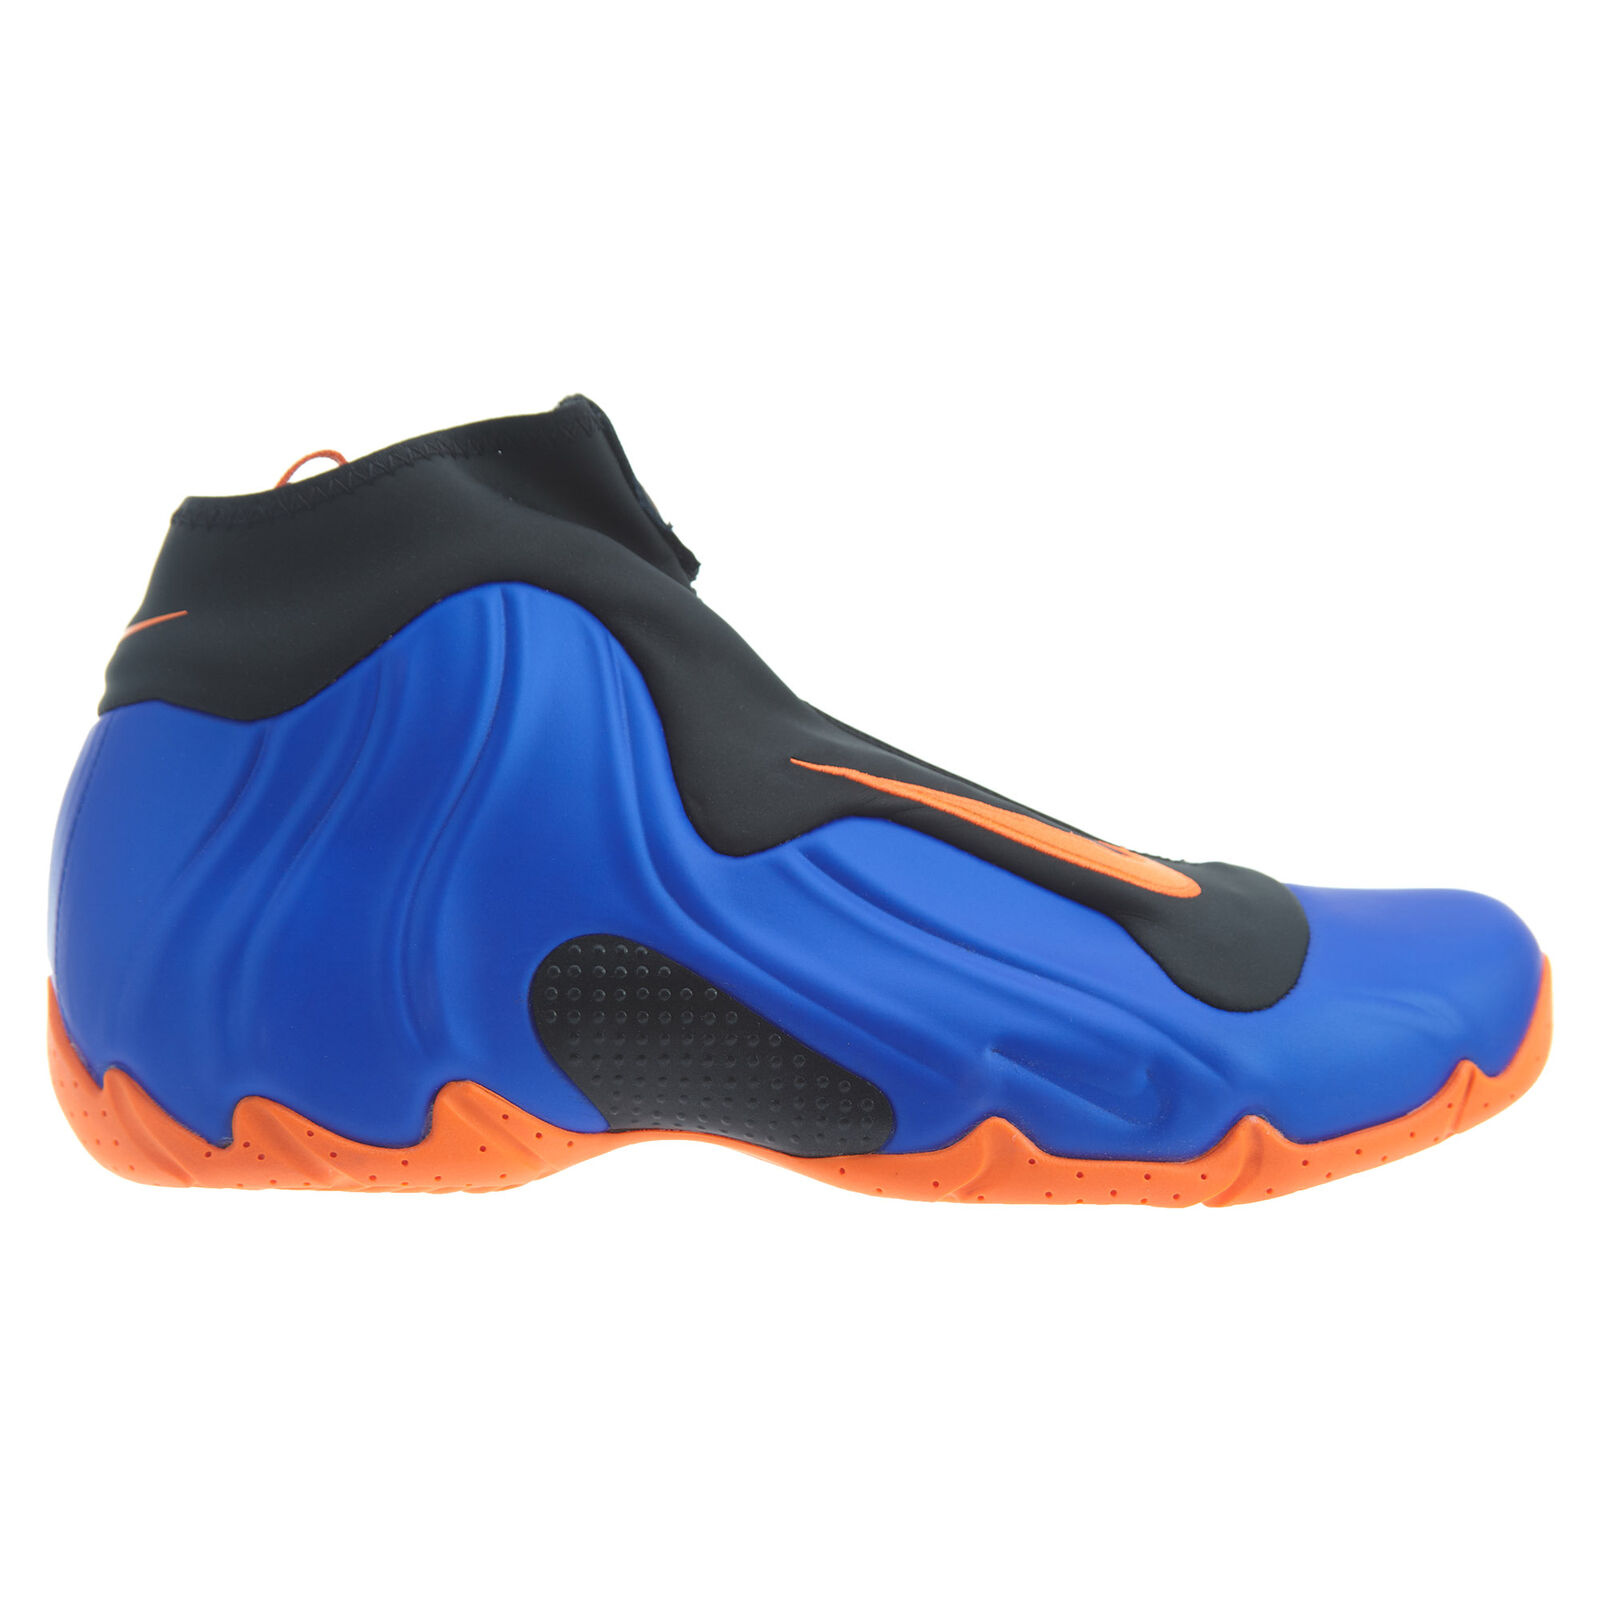 586724c6f52f0 Nike Air Flightposite Knicks Mens AO9378-401 bluee Basketball shoes Size  Size Size 10 0966c2